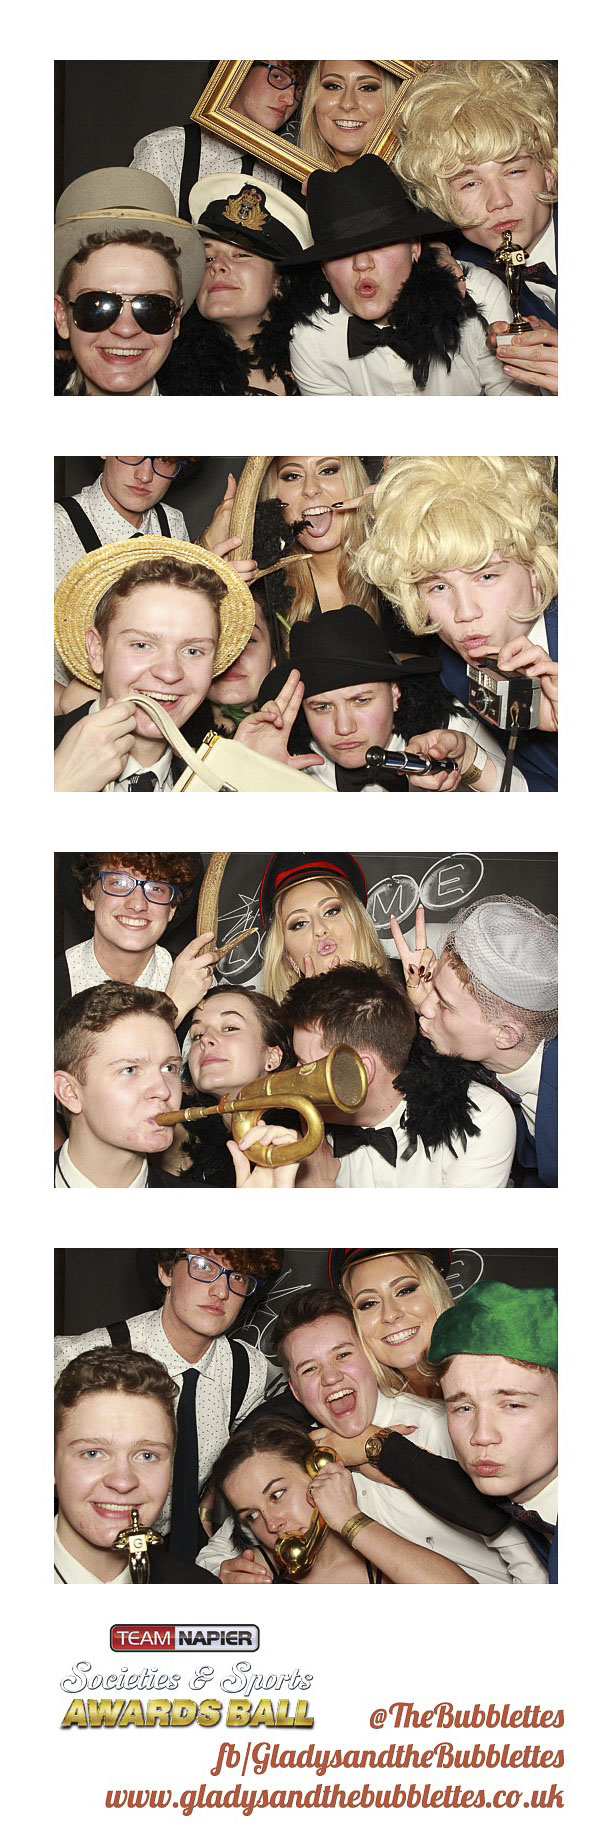 Gladys and the Bubblettes photo booth Scotland, Unique Retro & bespoke photo booths; vintage caravan photo booth, horsebox photo booth, the bed photo booth or the wireless.